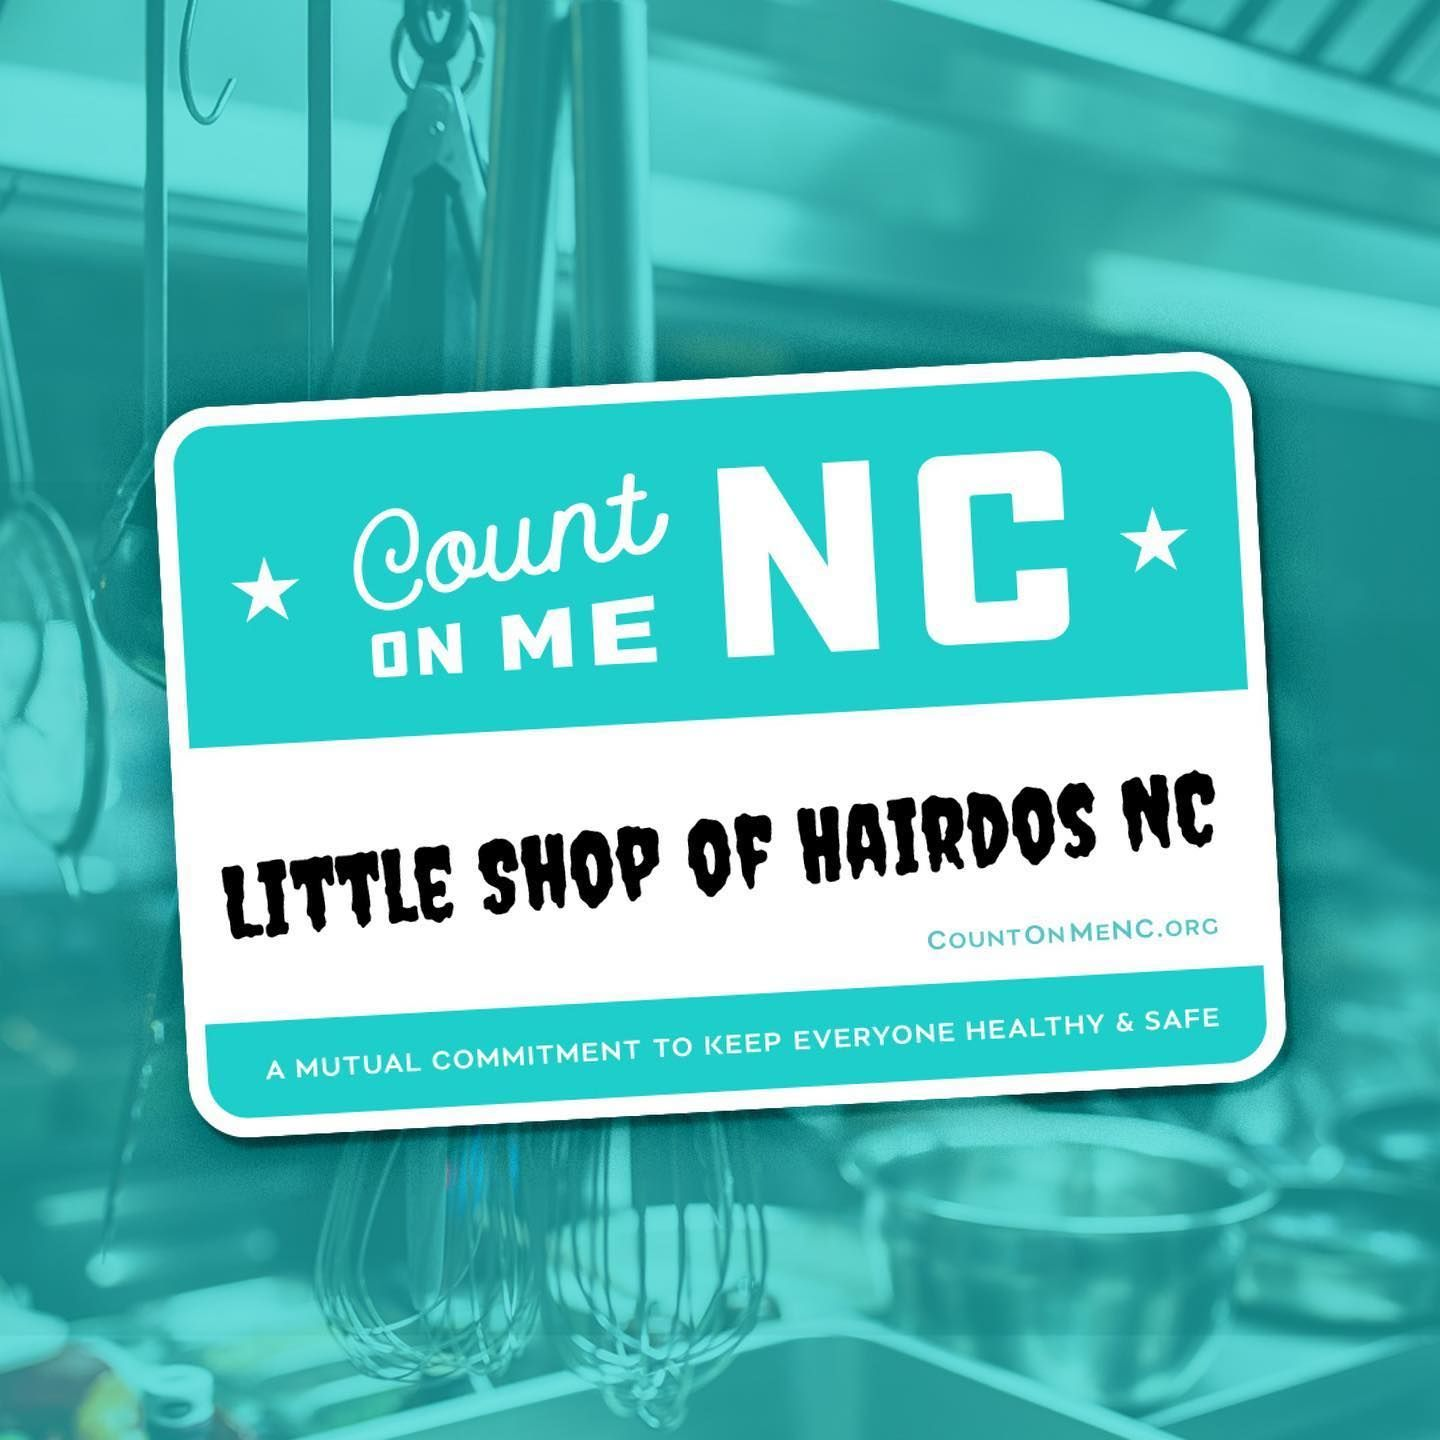 Pin on Little Shop of Hairdos NC Instagram